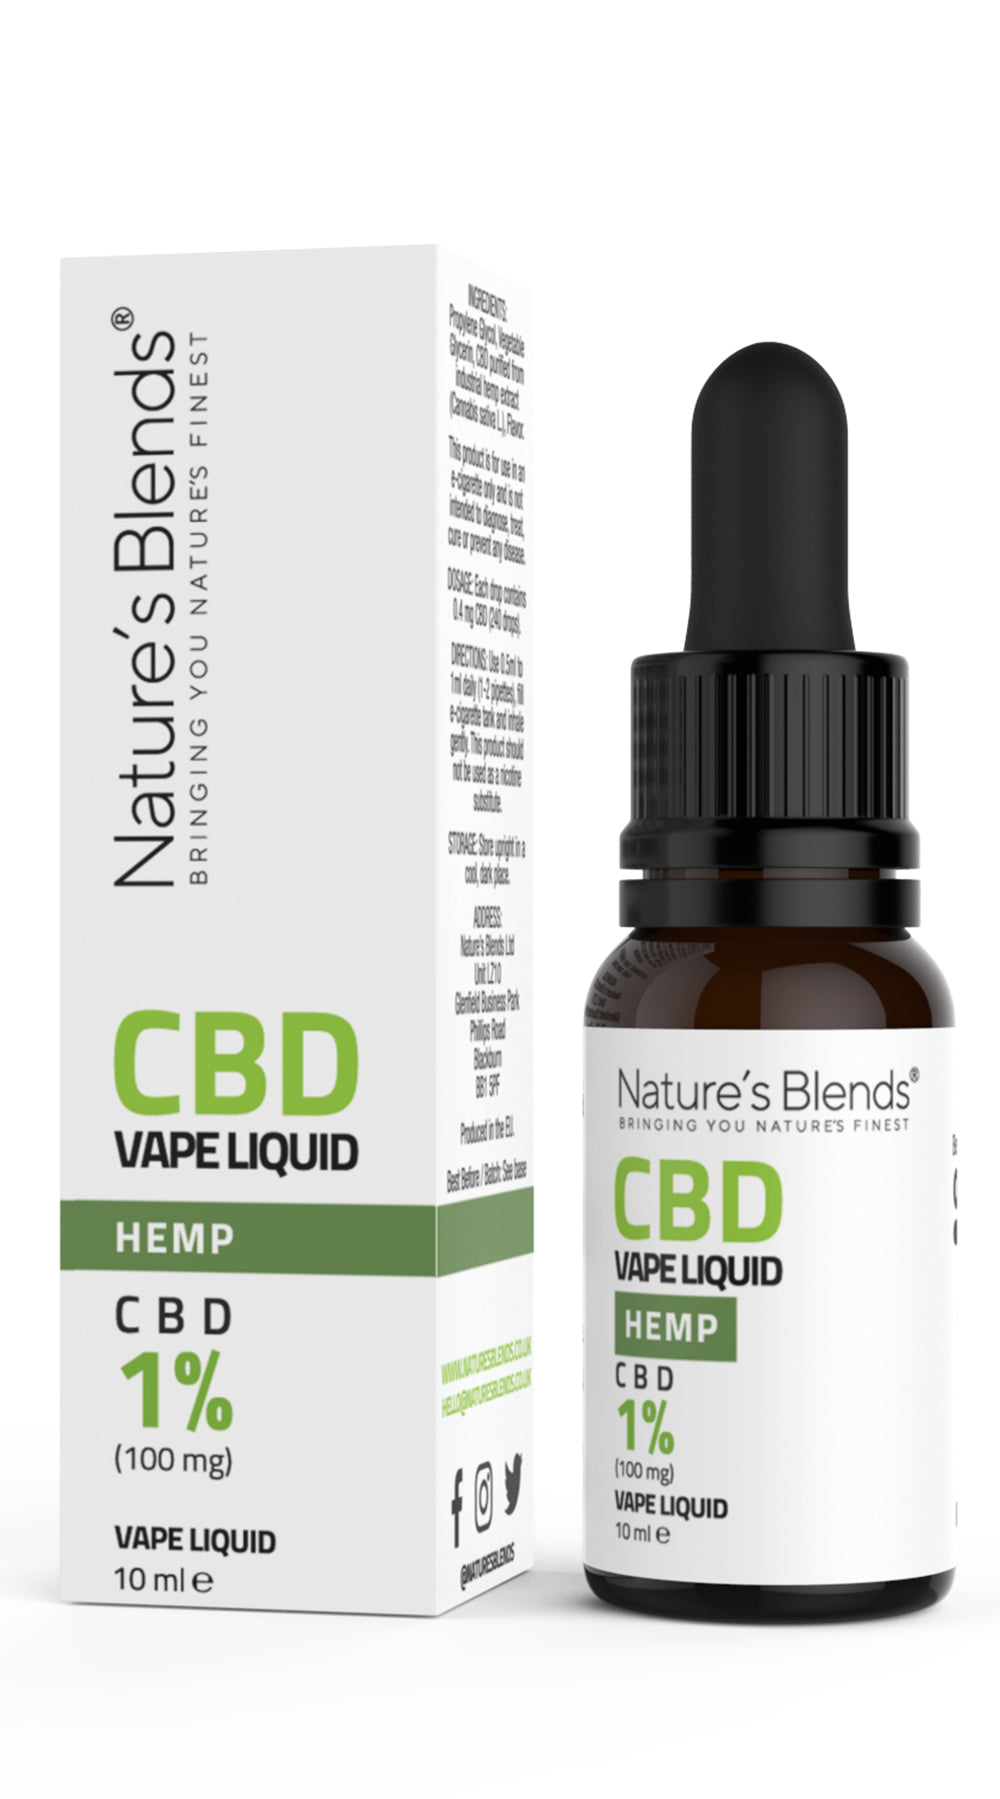 A 10ml bottle of 100mg cbd vape hemp flavour along side natures blends packaging